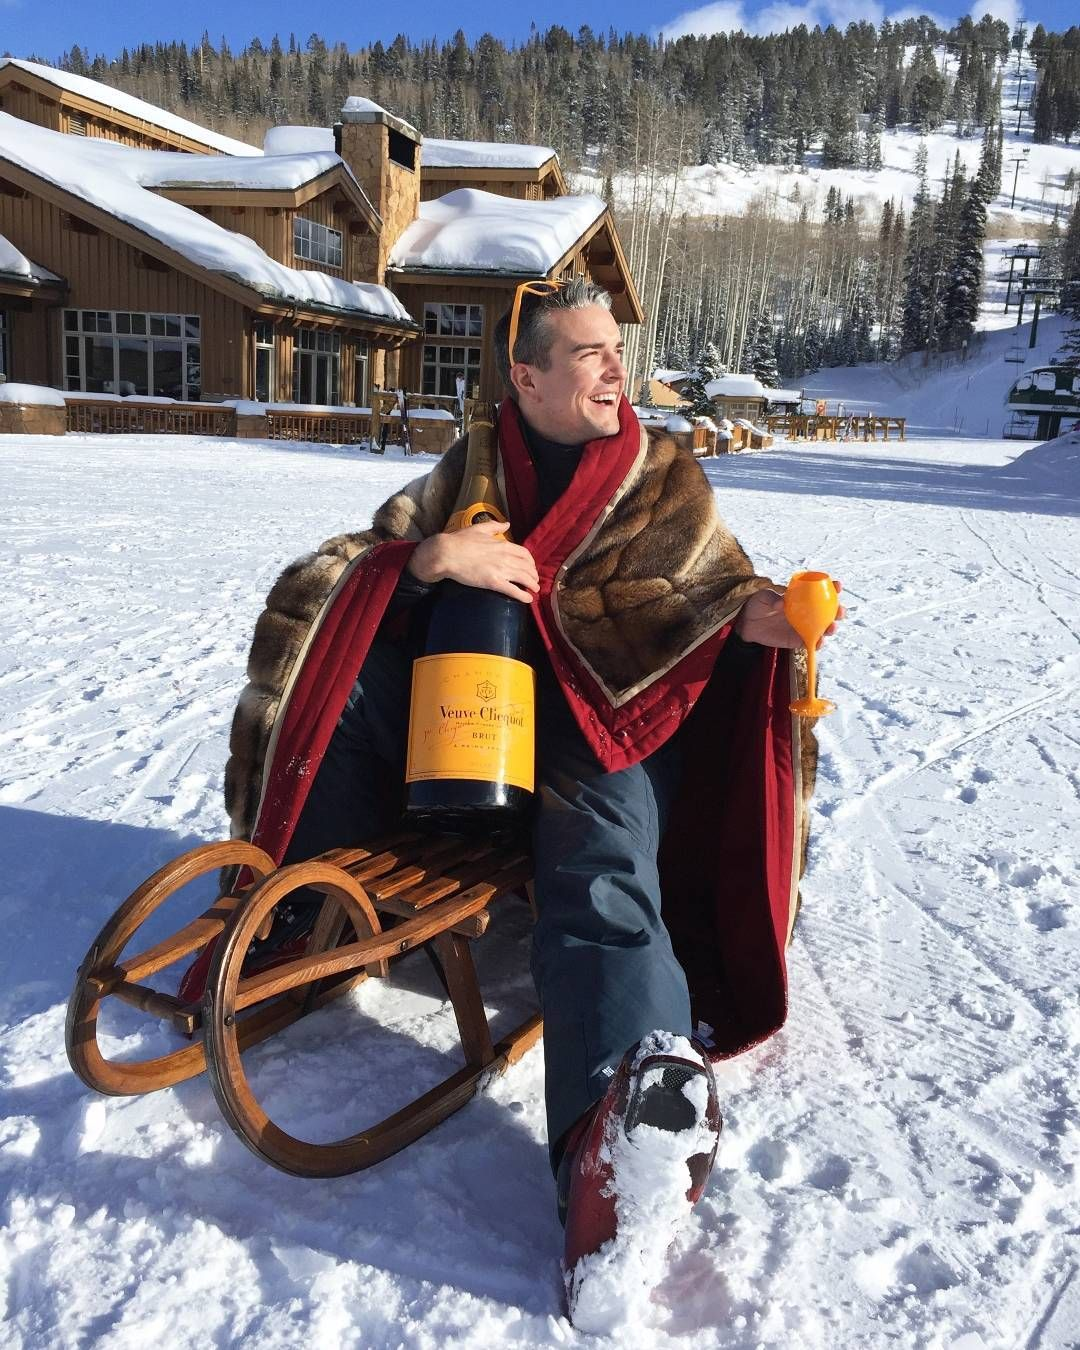 Gray Malin On Instagram Apres Ski Party Celebrate Our Winter Wonderland Event Link In Profile Wonderland Events Apres Ski Party Apres Ski